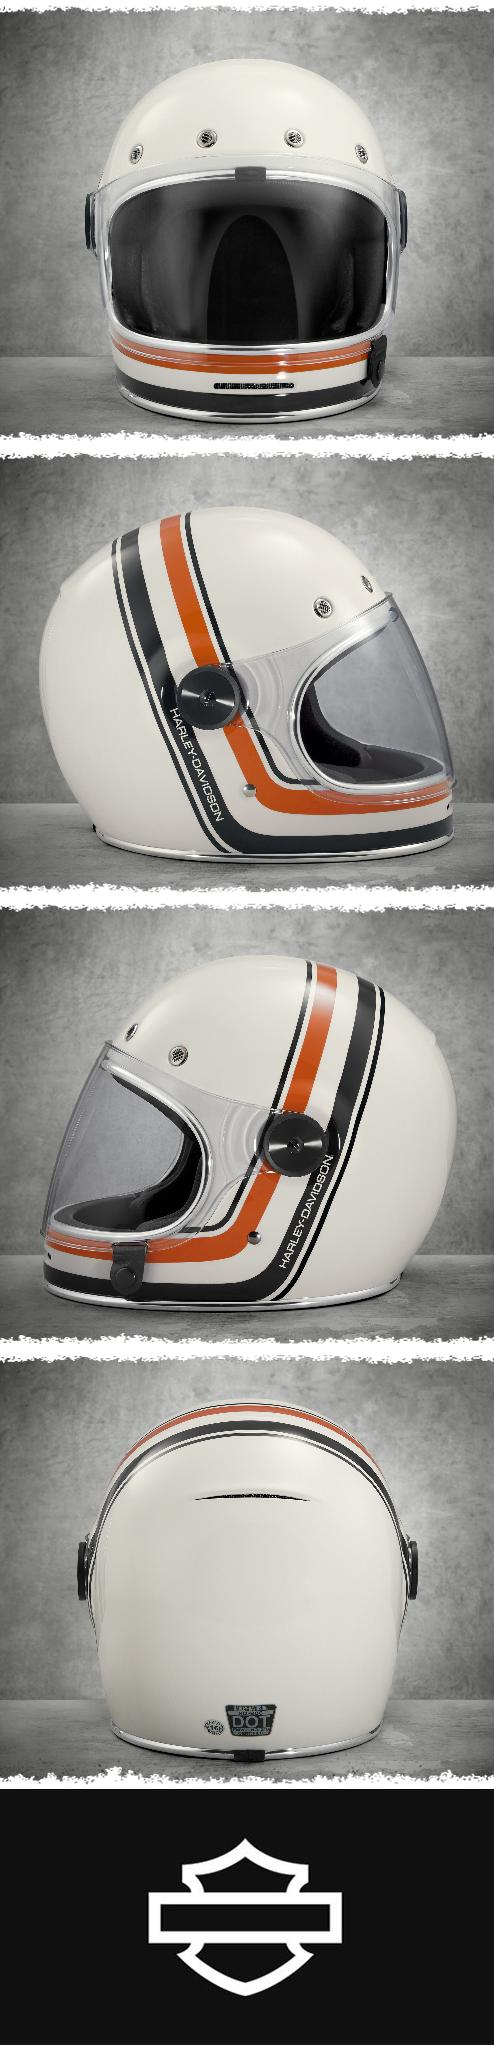 Bell custom 500 gloss black vintage low profile helmet chopper harley - Vintage Stripe B06 Full Face Helmet